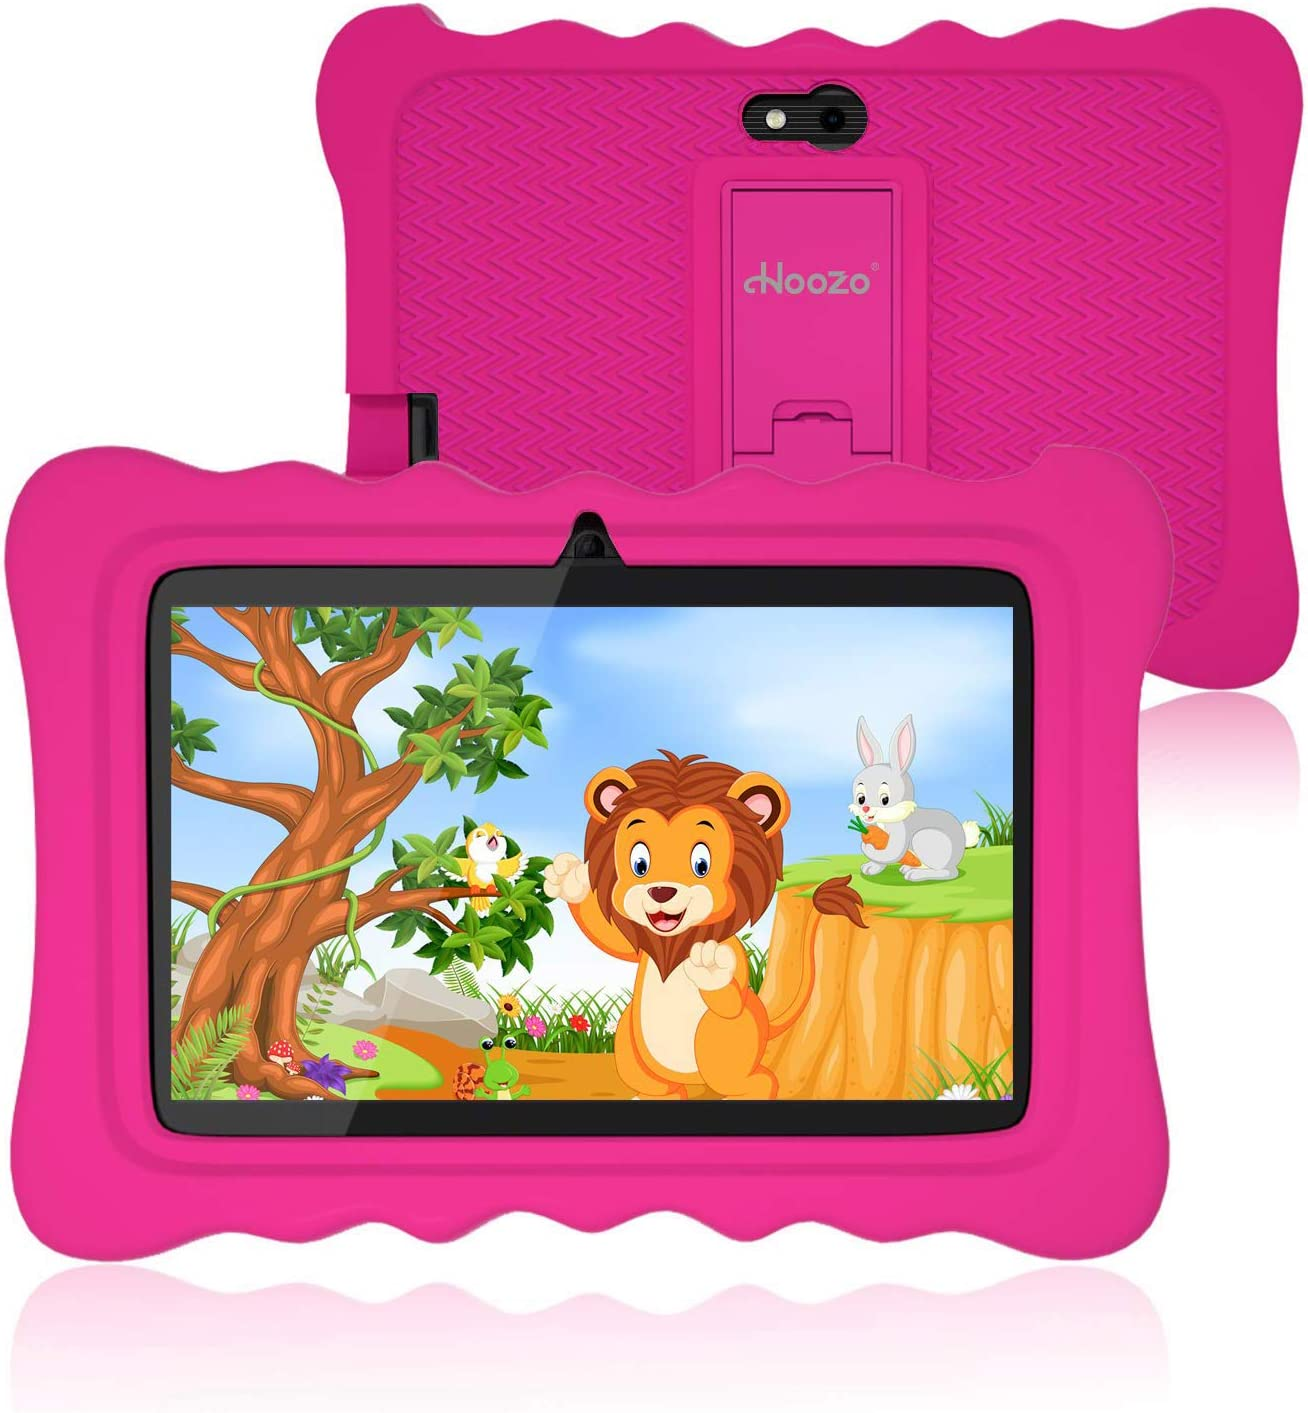 Kids Tablet 7 Inch, Andriod 9.0 Tablet for Kids, 2GB +16GB, Kids Mode Pre-Installed, Educational Apps, Games, Camera and WiFi (Kids-Proof Case Pink)